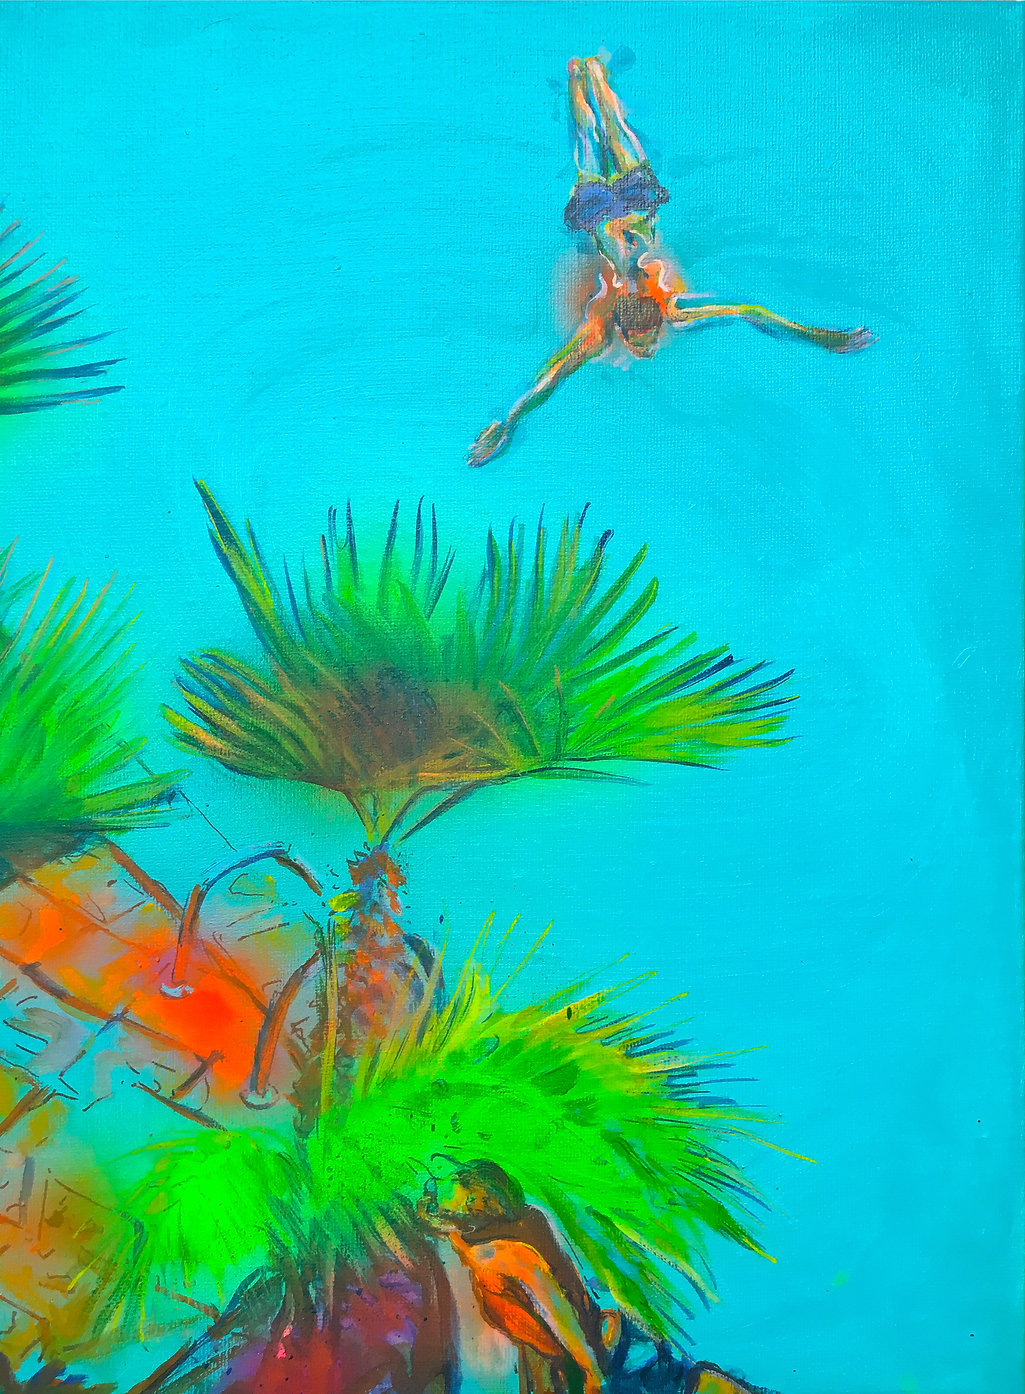 Poolside, 40 x 30 cm, mixed media on canvas